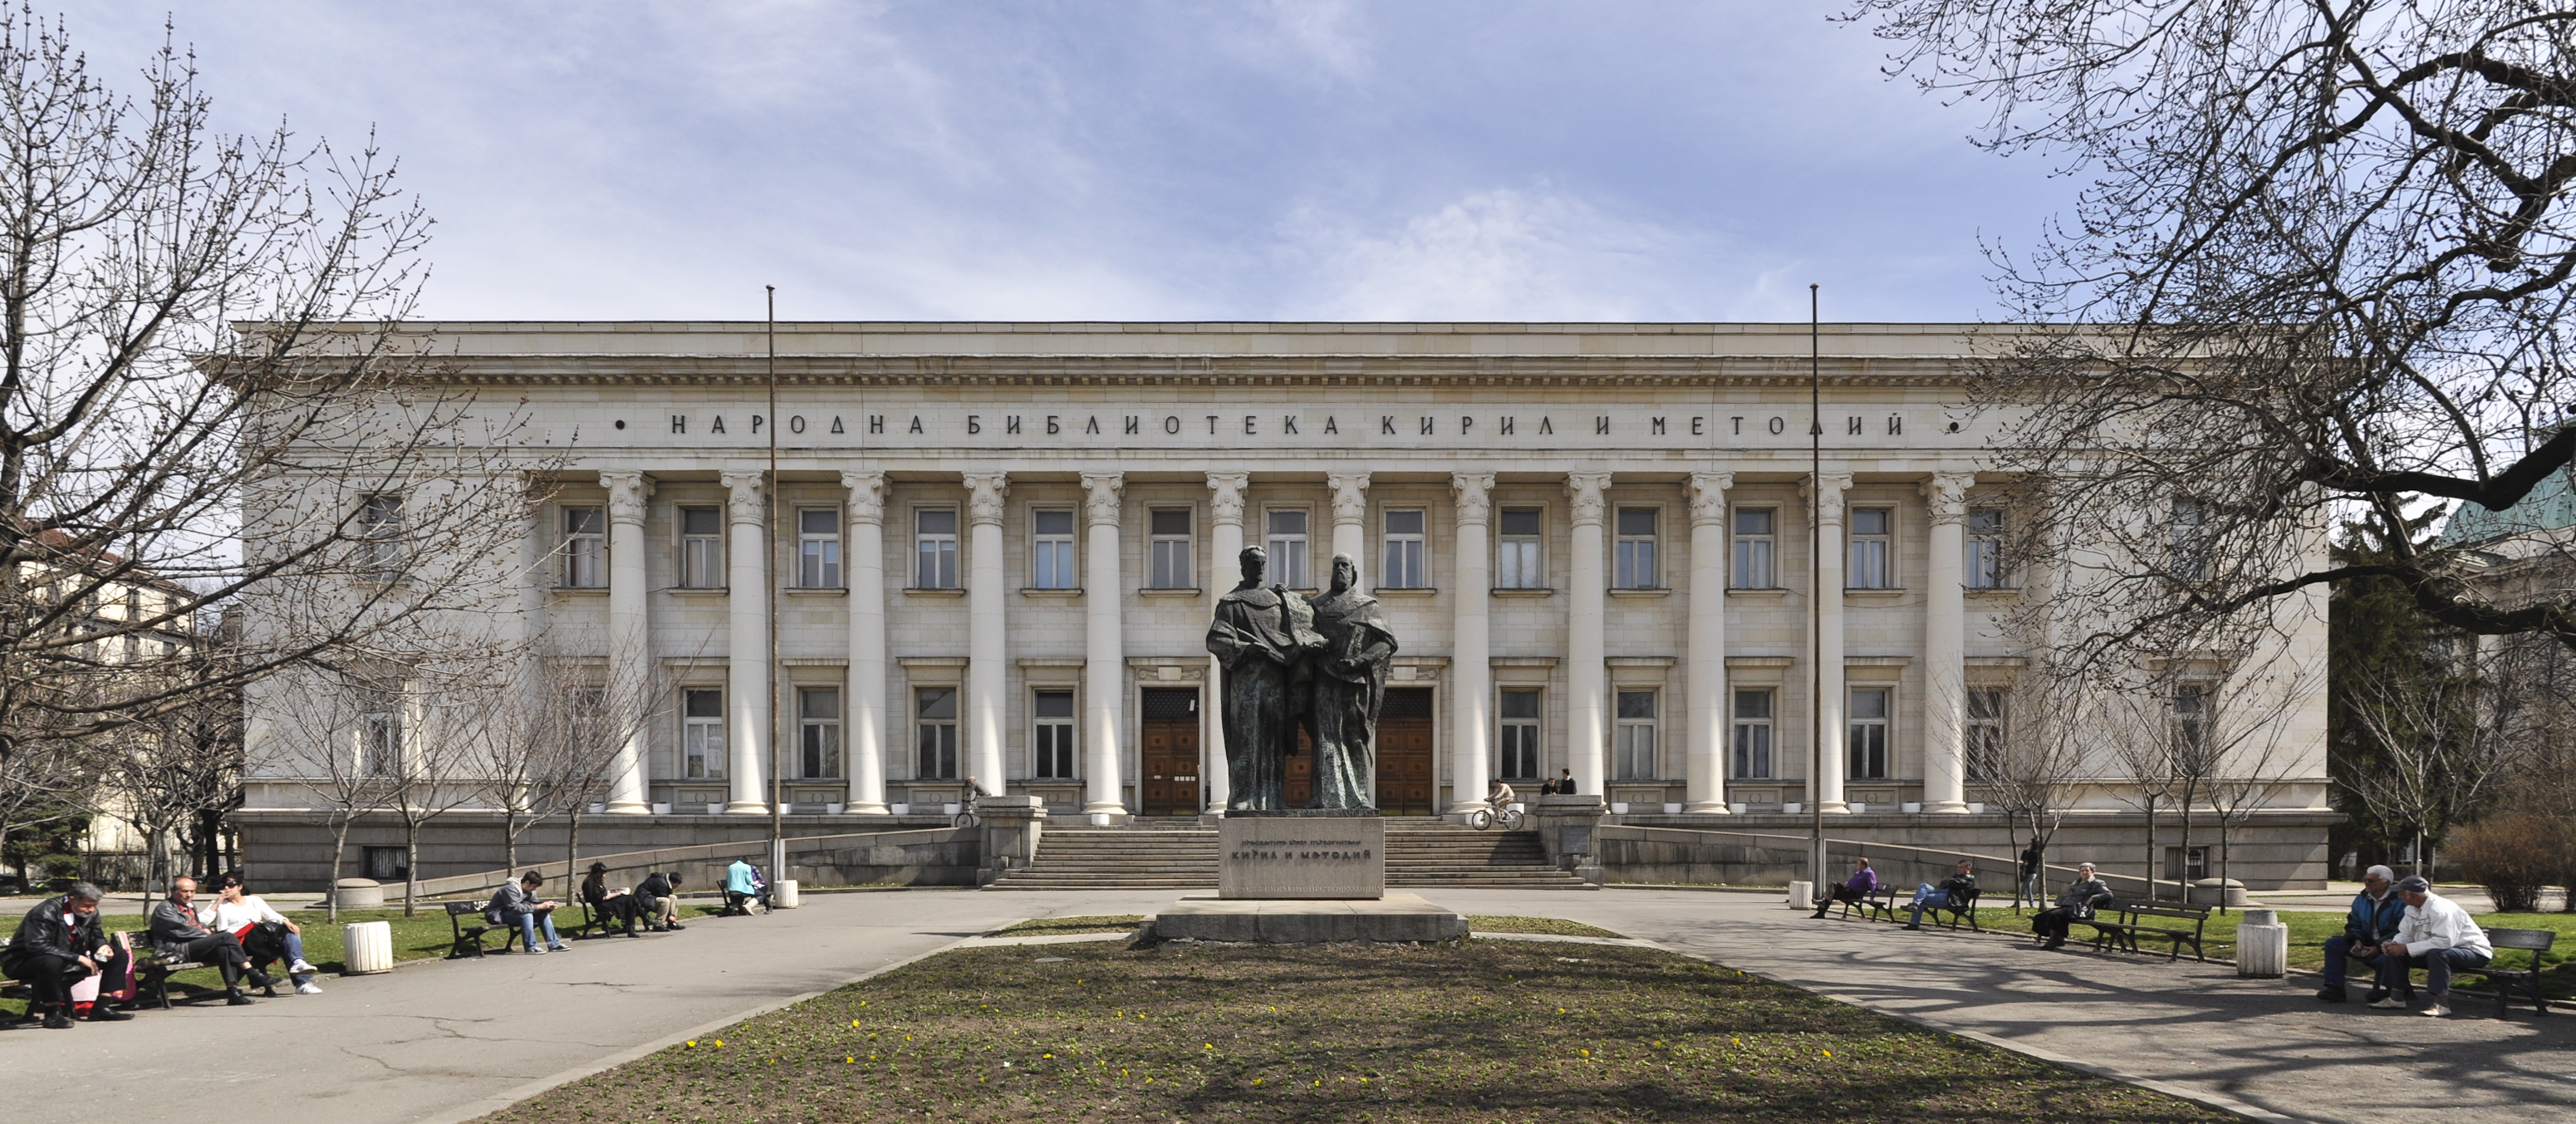 File:National Library - Sofia.jpg - Wikipedia